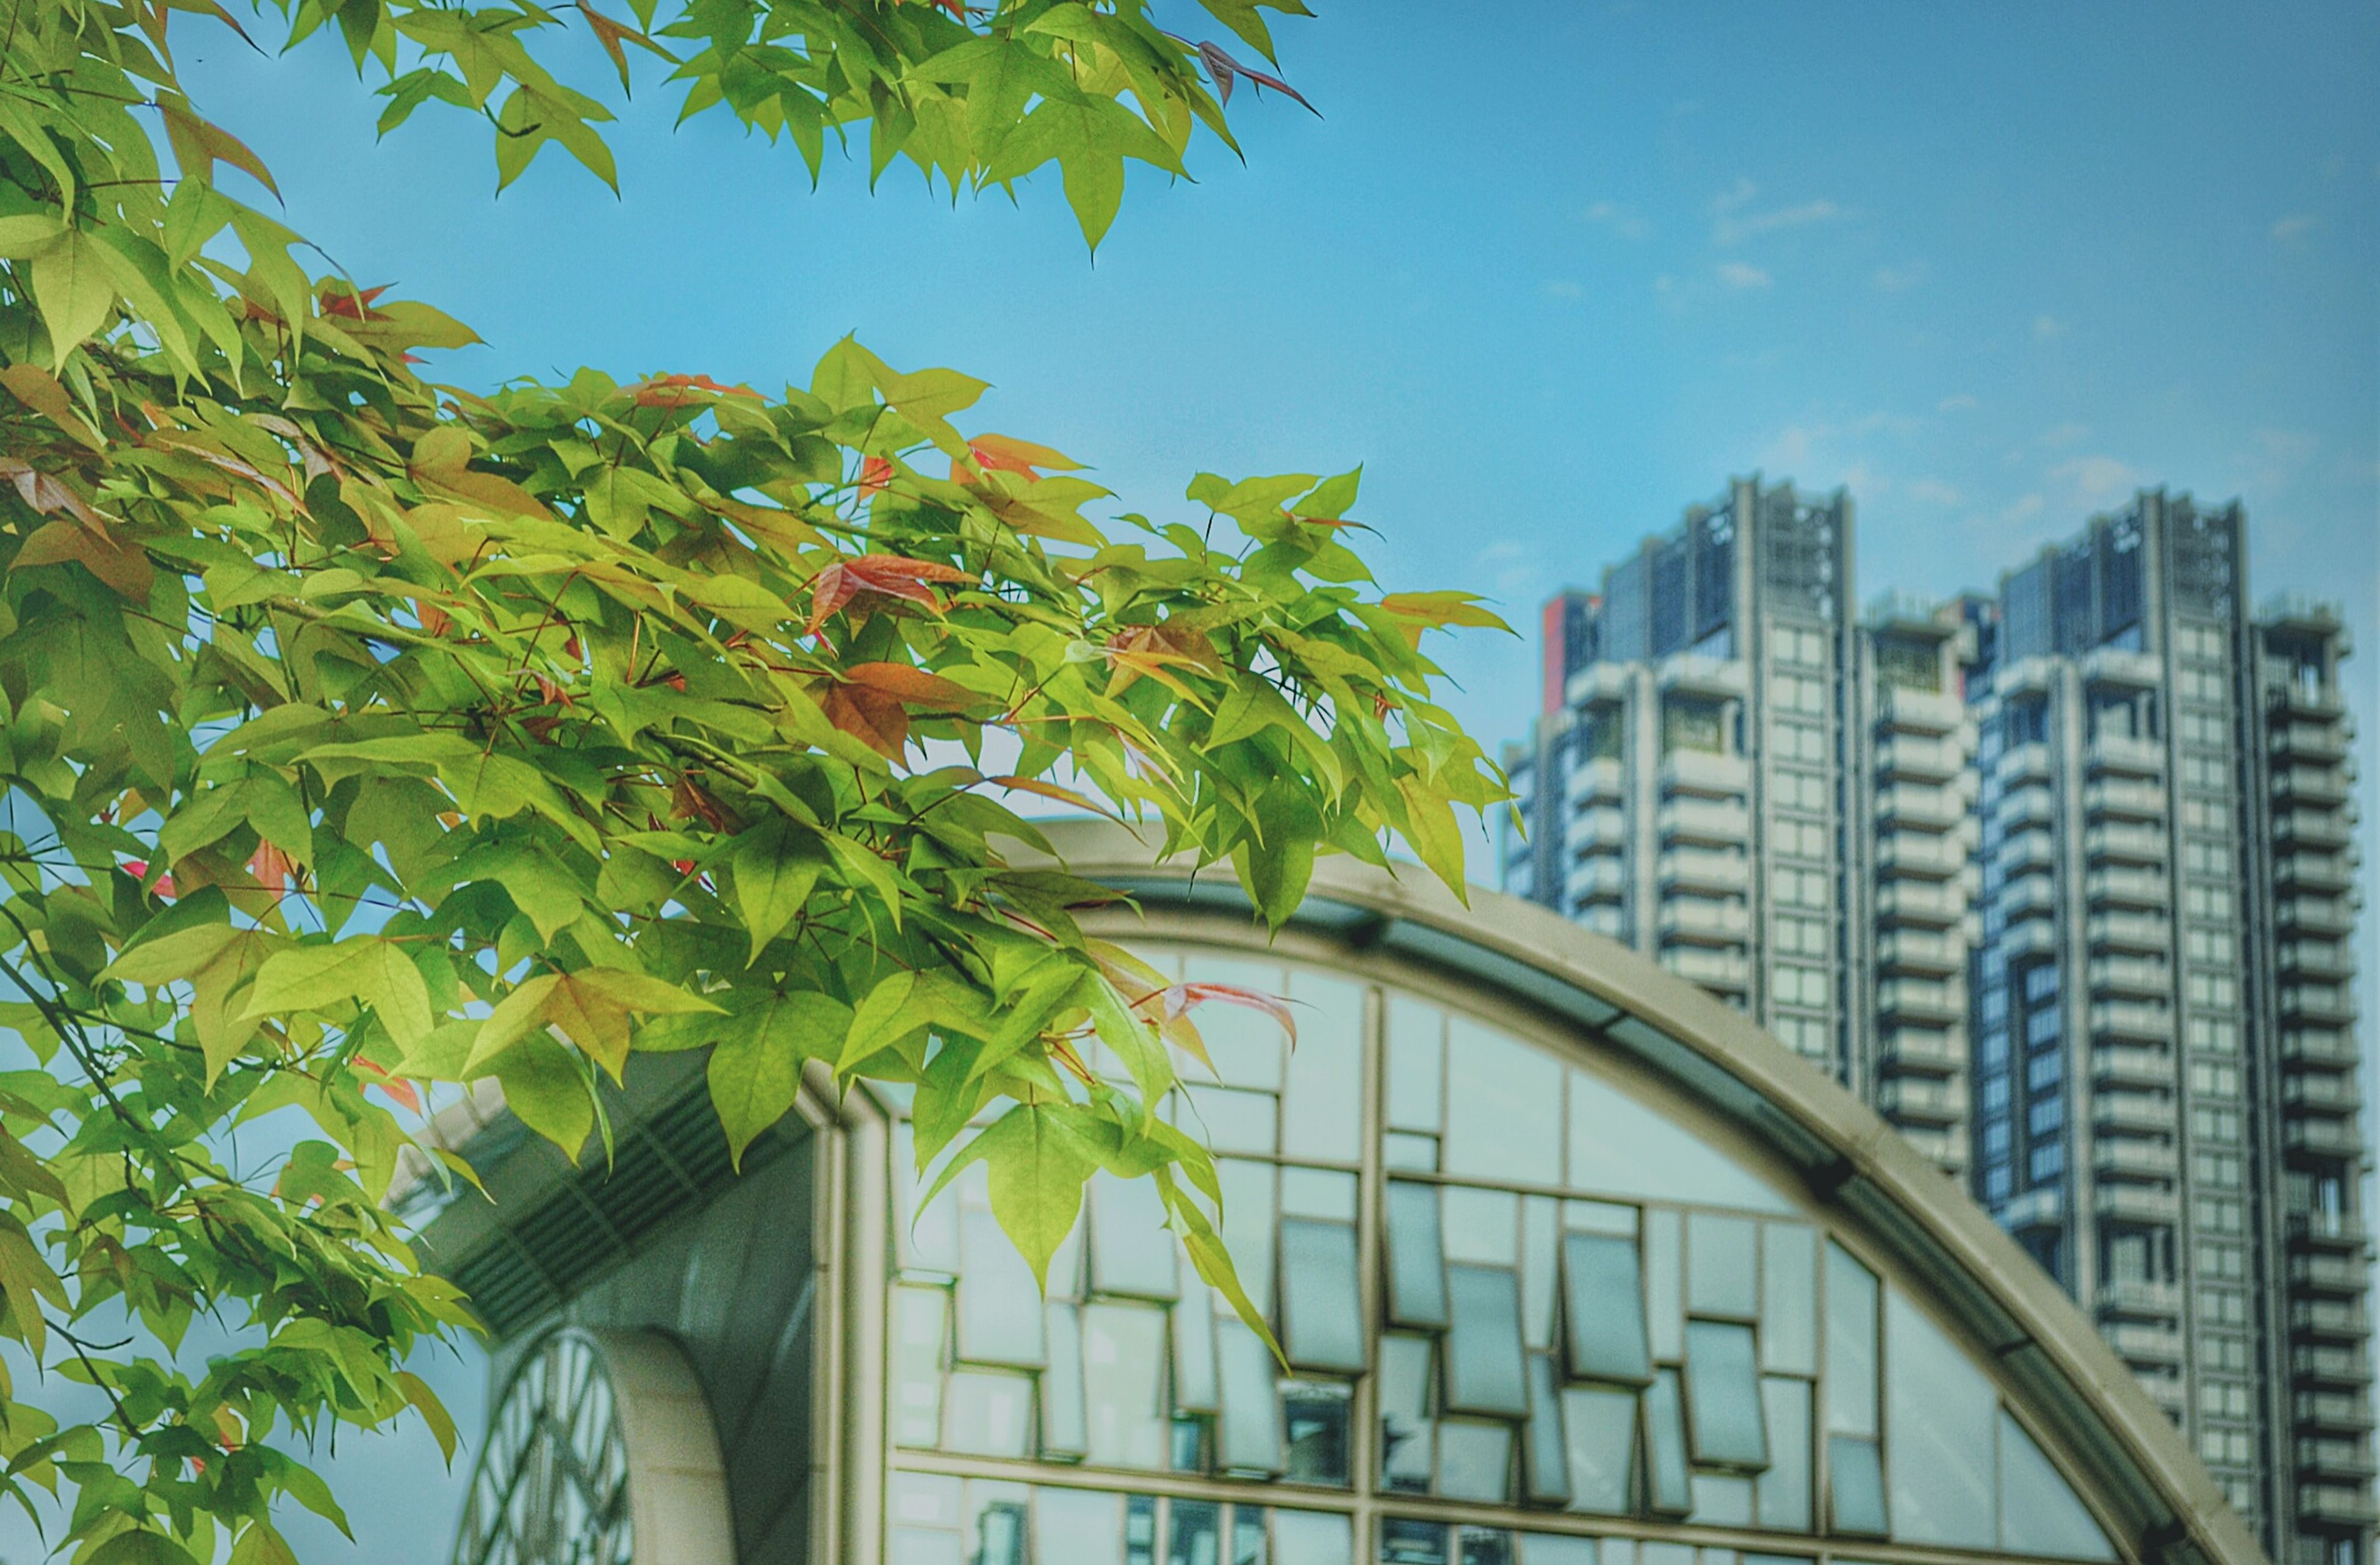 architecture, building exterior, built structure, city, skyscraper, low angle view, modern, outdoors, tower, growth, tree, no people, residential building, cityscape, day, urban skyline, sky, downtown district